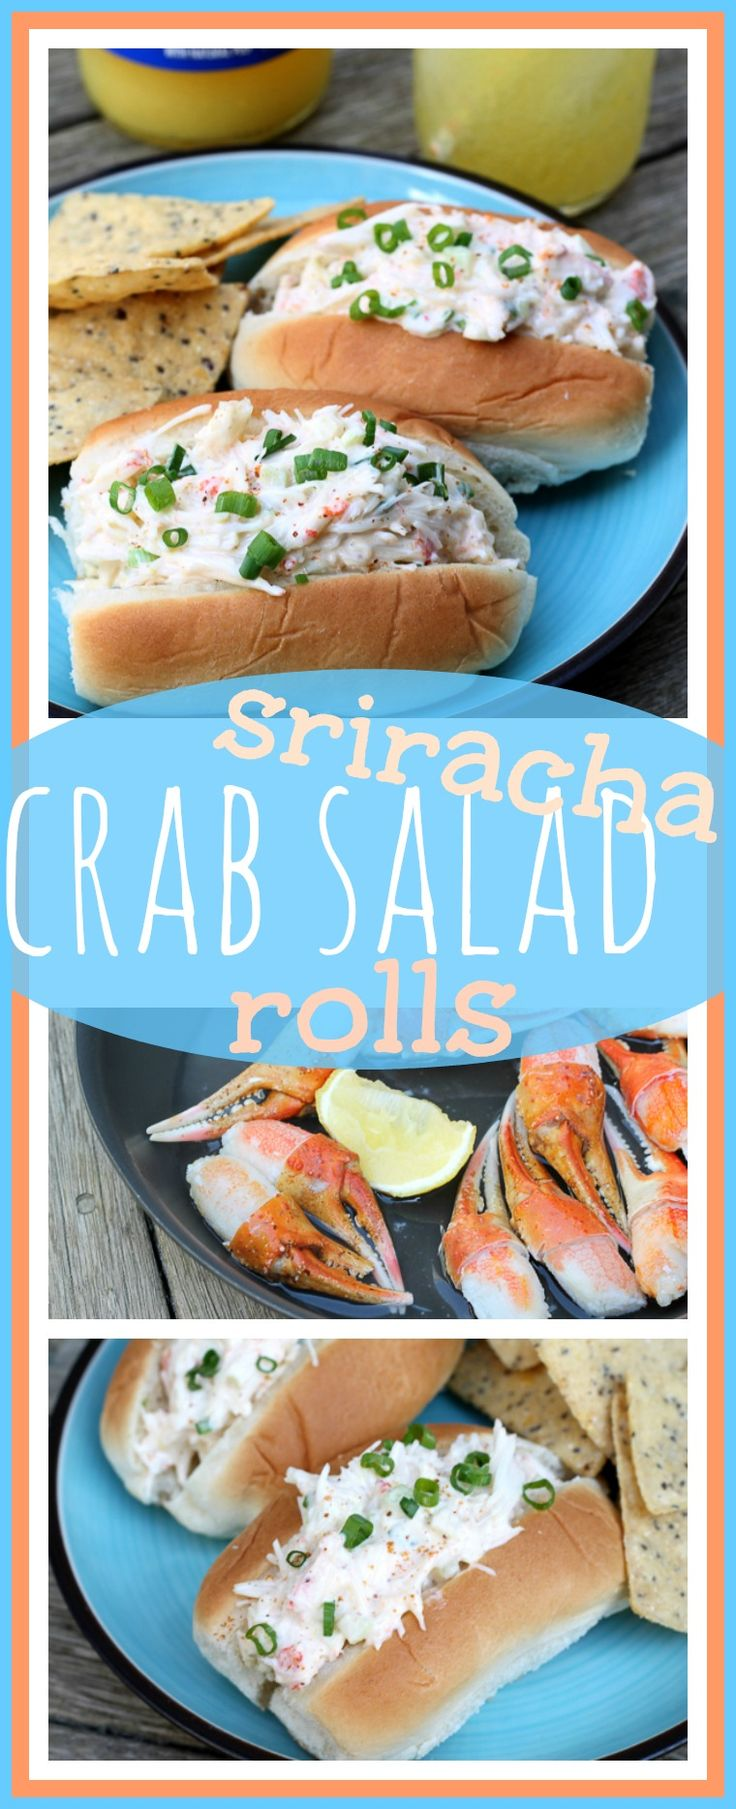 13 best Creole images on Pinterest | Creole recipes, Cajun food and ...